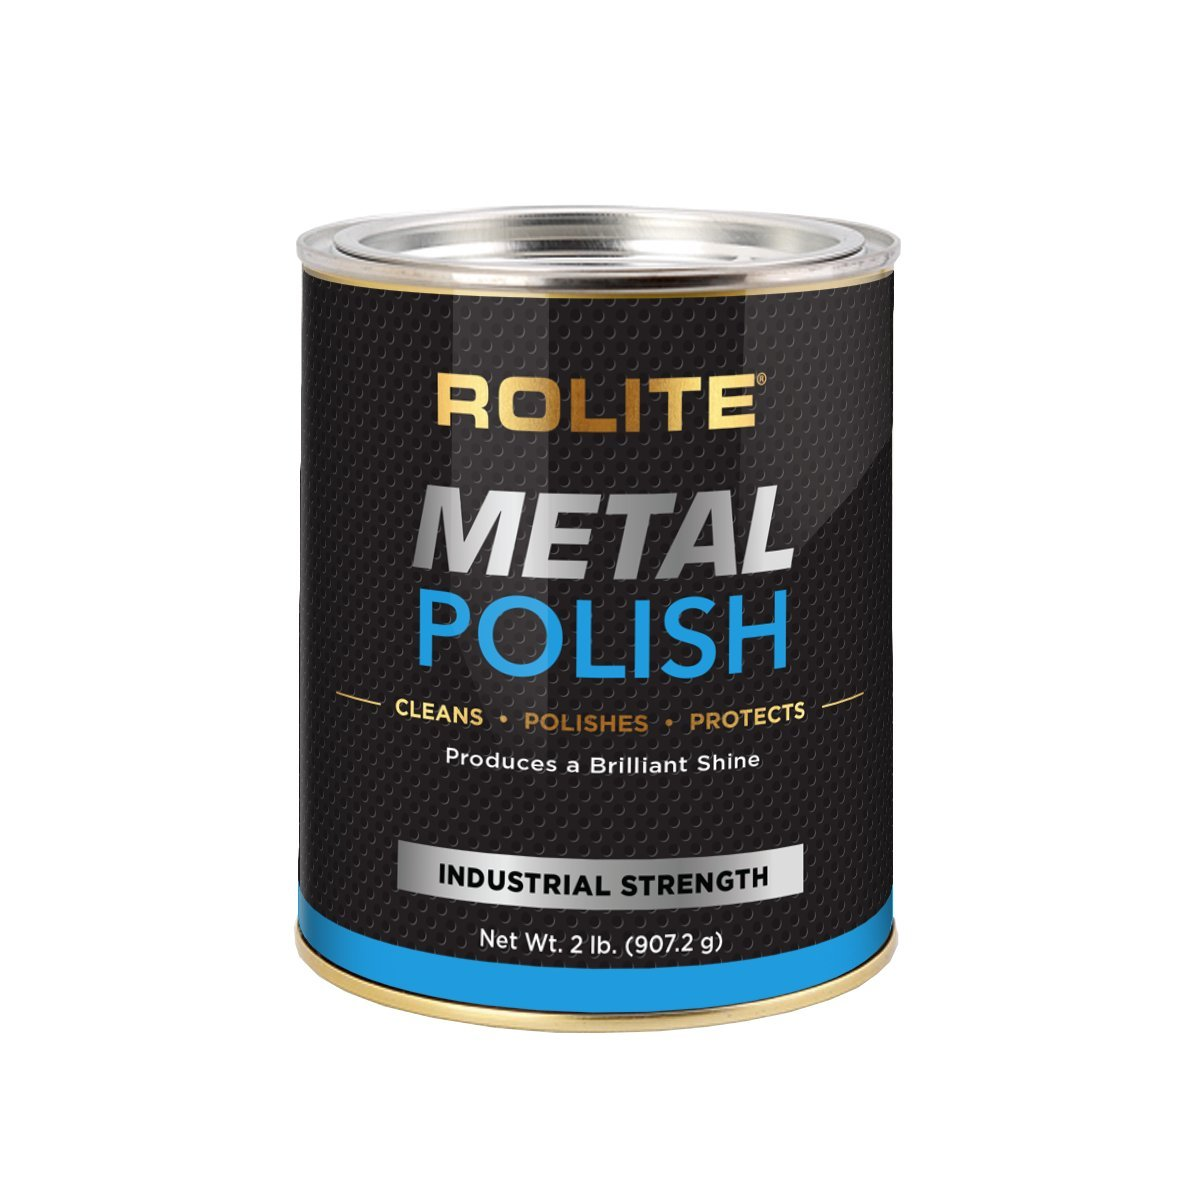 Rolite Metal Polish Paste (2lb) for Aluminum, Brass, Bronze, Chrome, Copper, Gold, Nickel and Stainless Steel